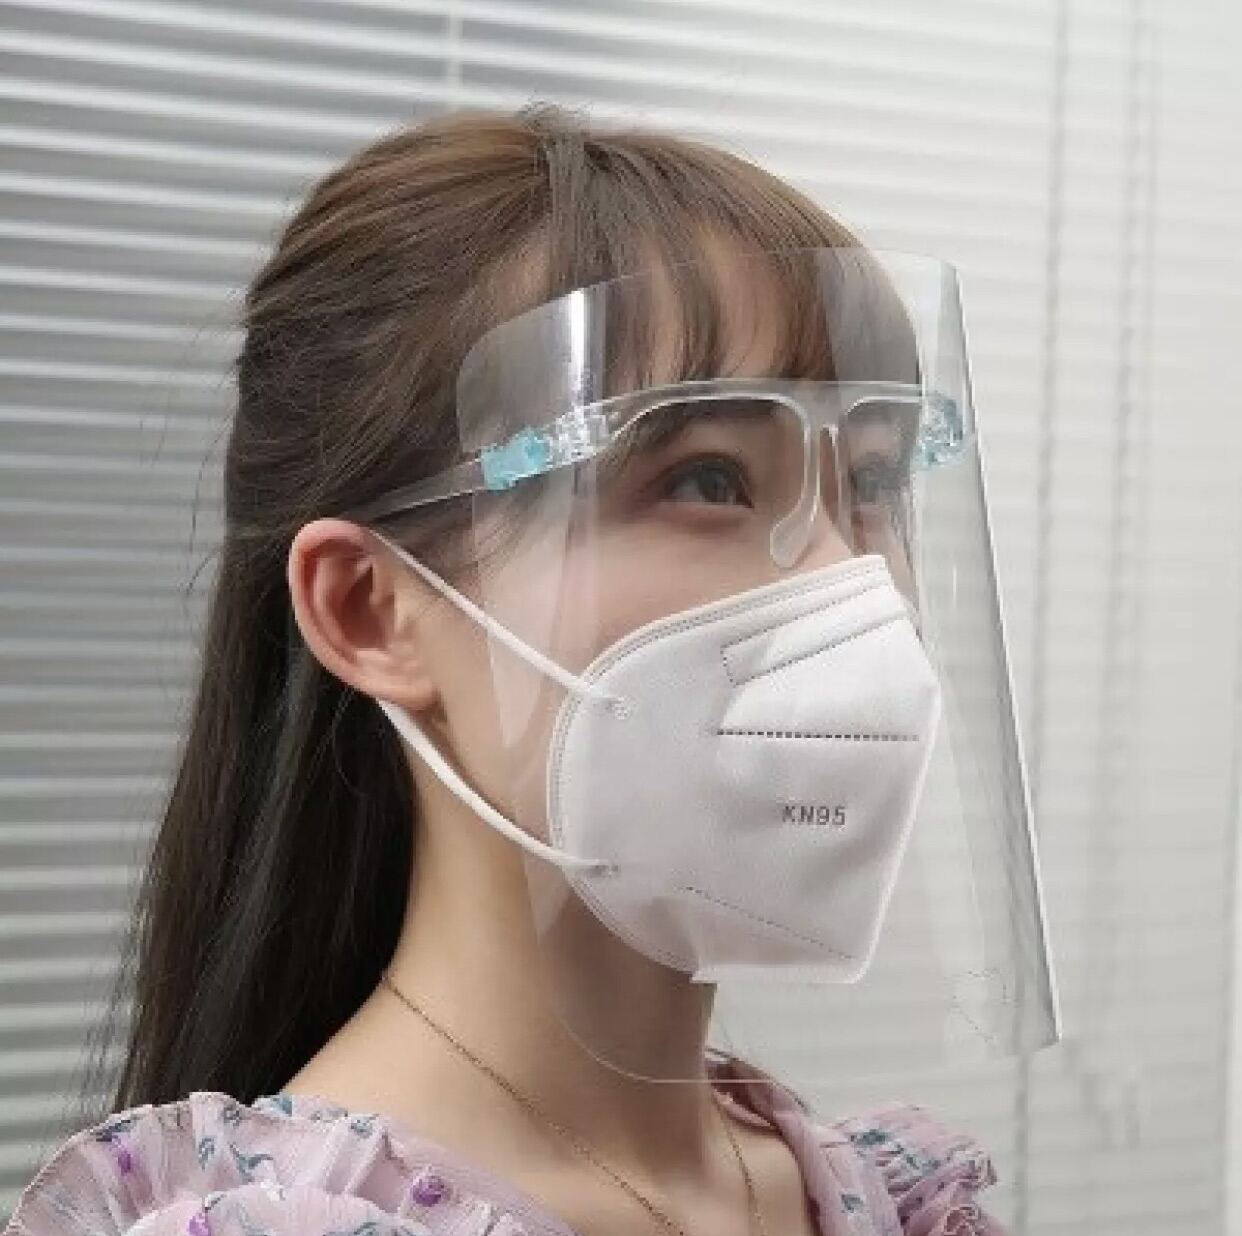 🇲🇾Ready Stock🇲🇾Transparent Face Shield Protective Mask with Glasses Cover  眼镜防护面罩